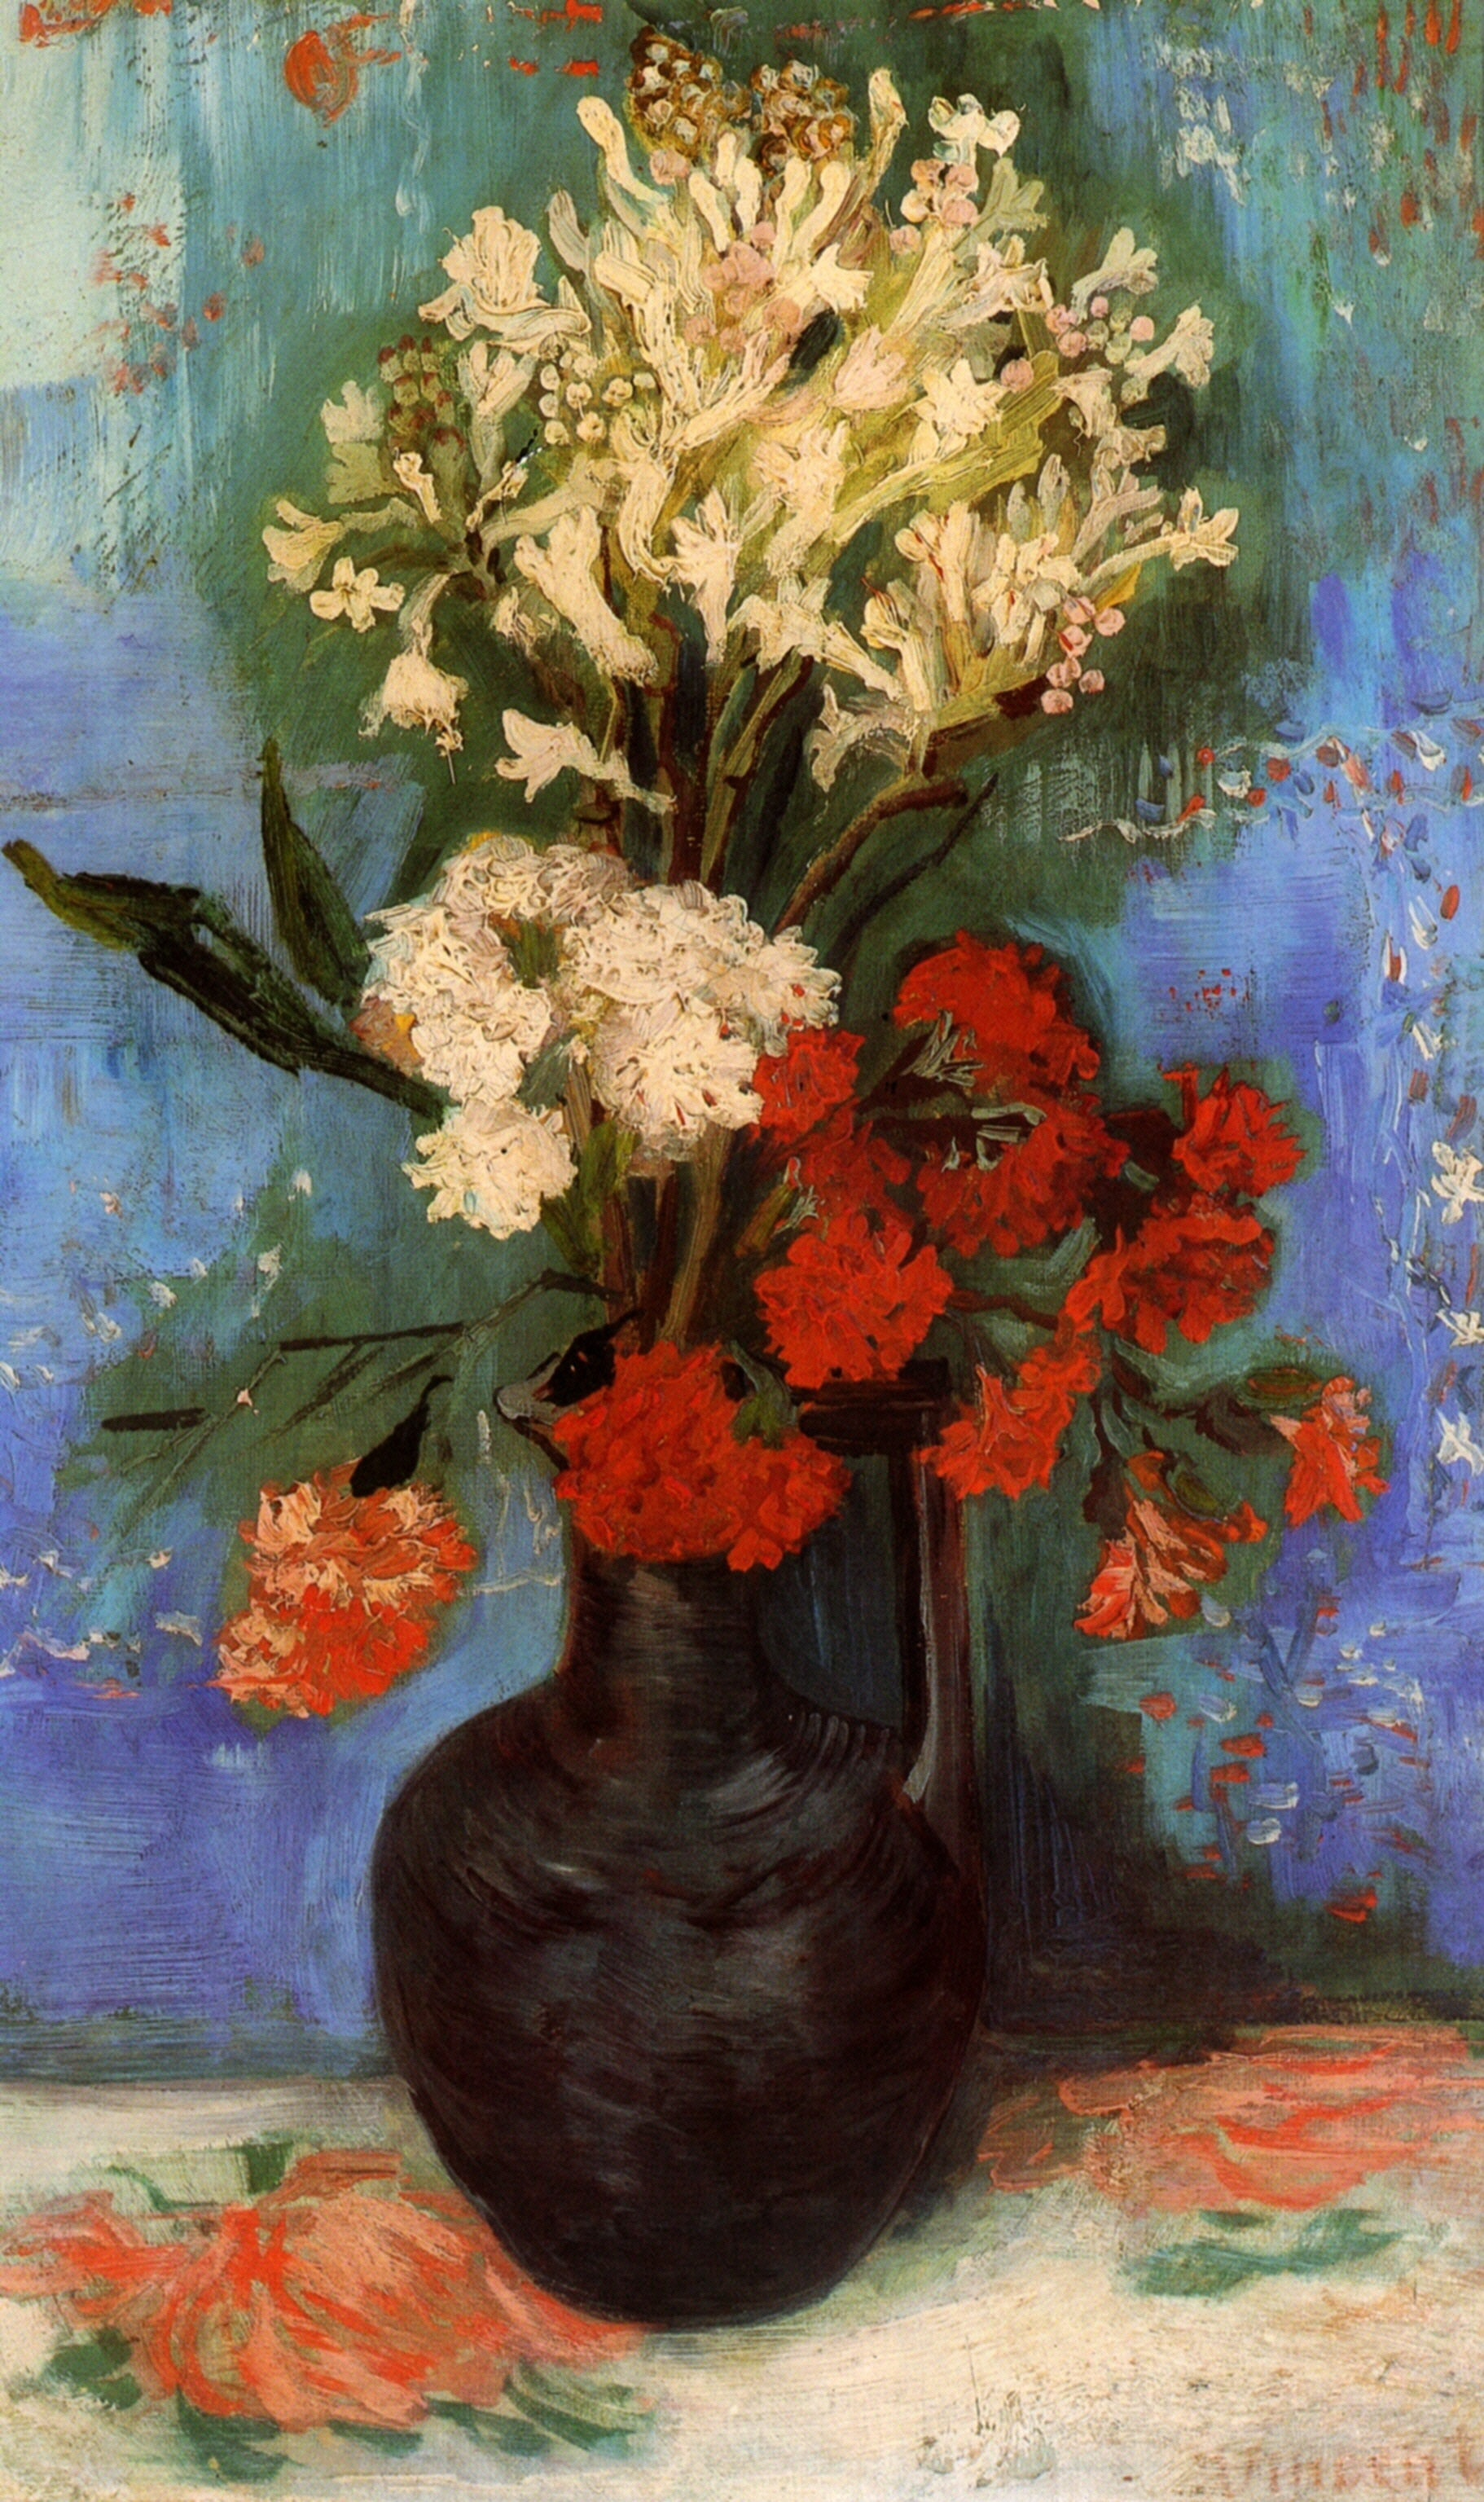 Elisabeth huberta van gogh hidden cause visible effects 23 still life with carnations and other flowers 1886 oil on canvas the reviewsmspy